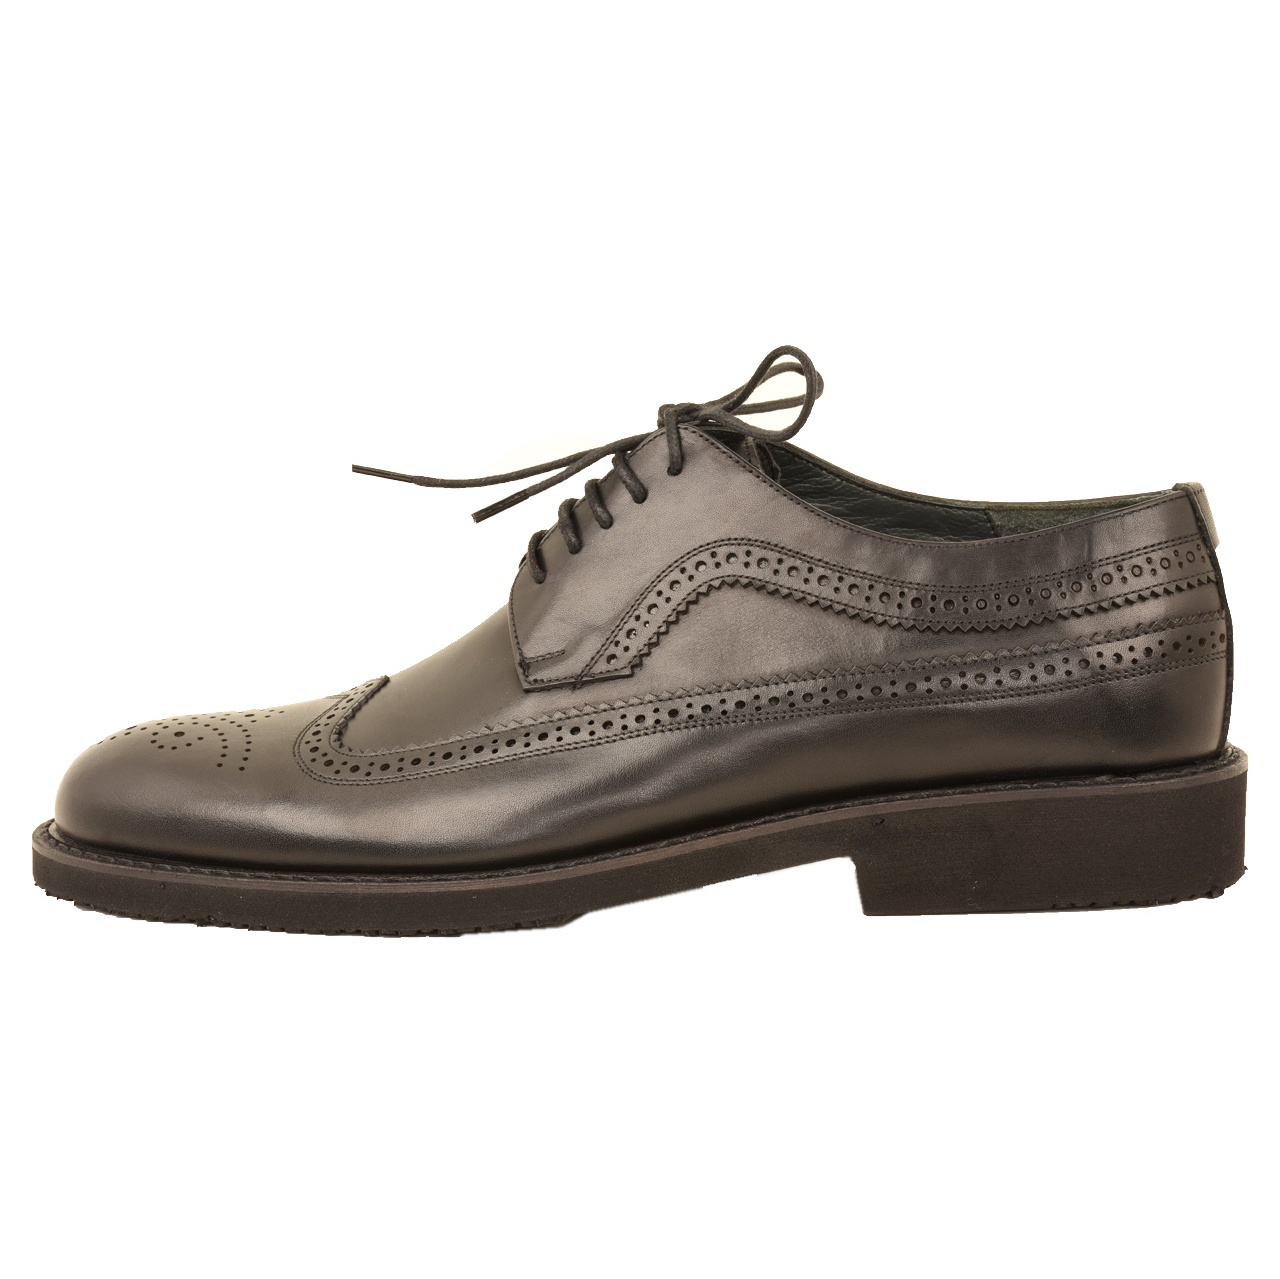 KOHANCHARM men's shoes, SHO155 Model